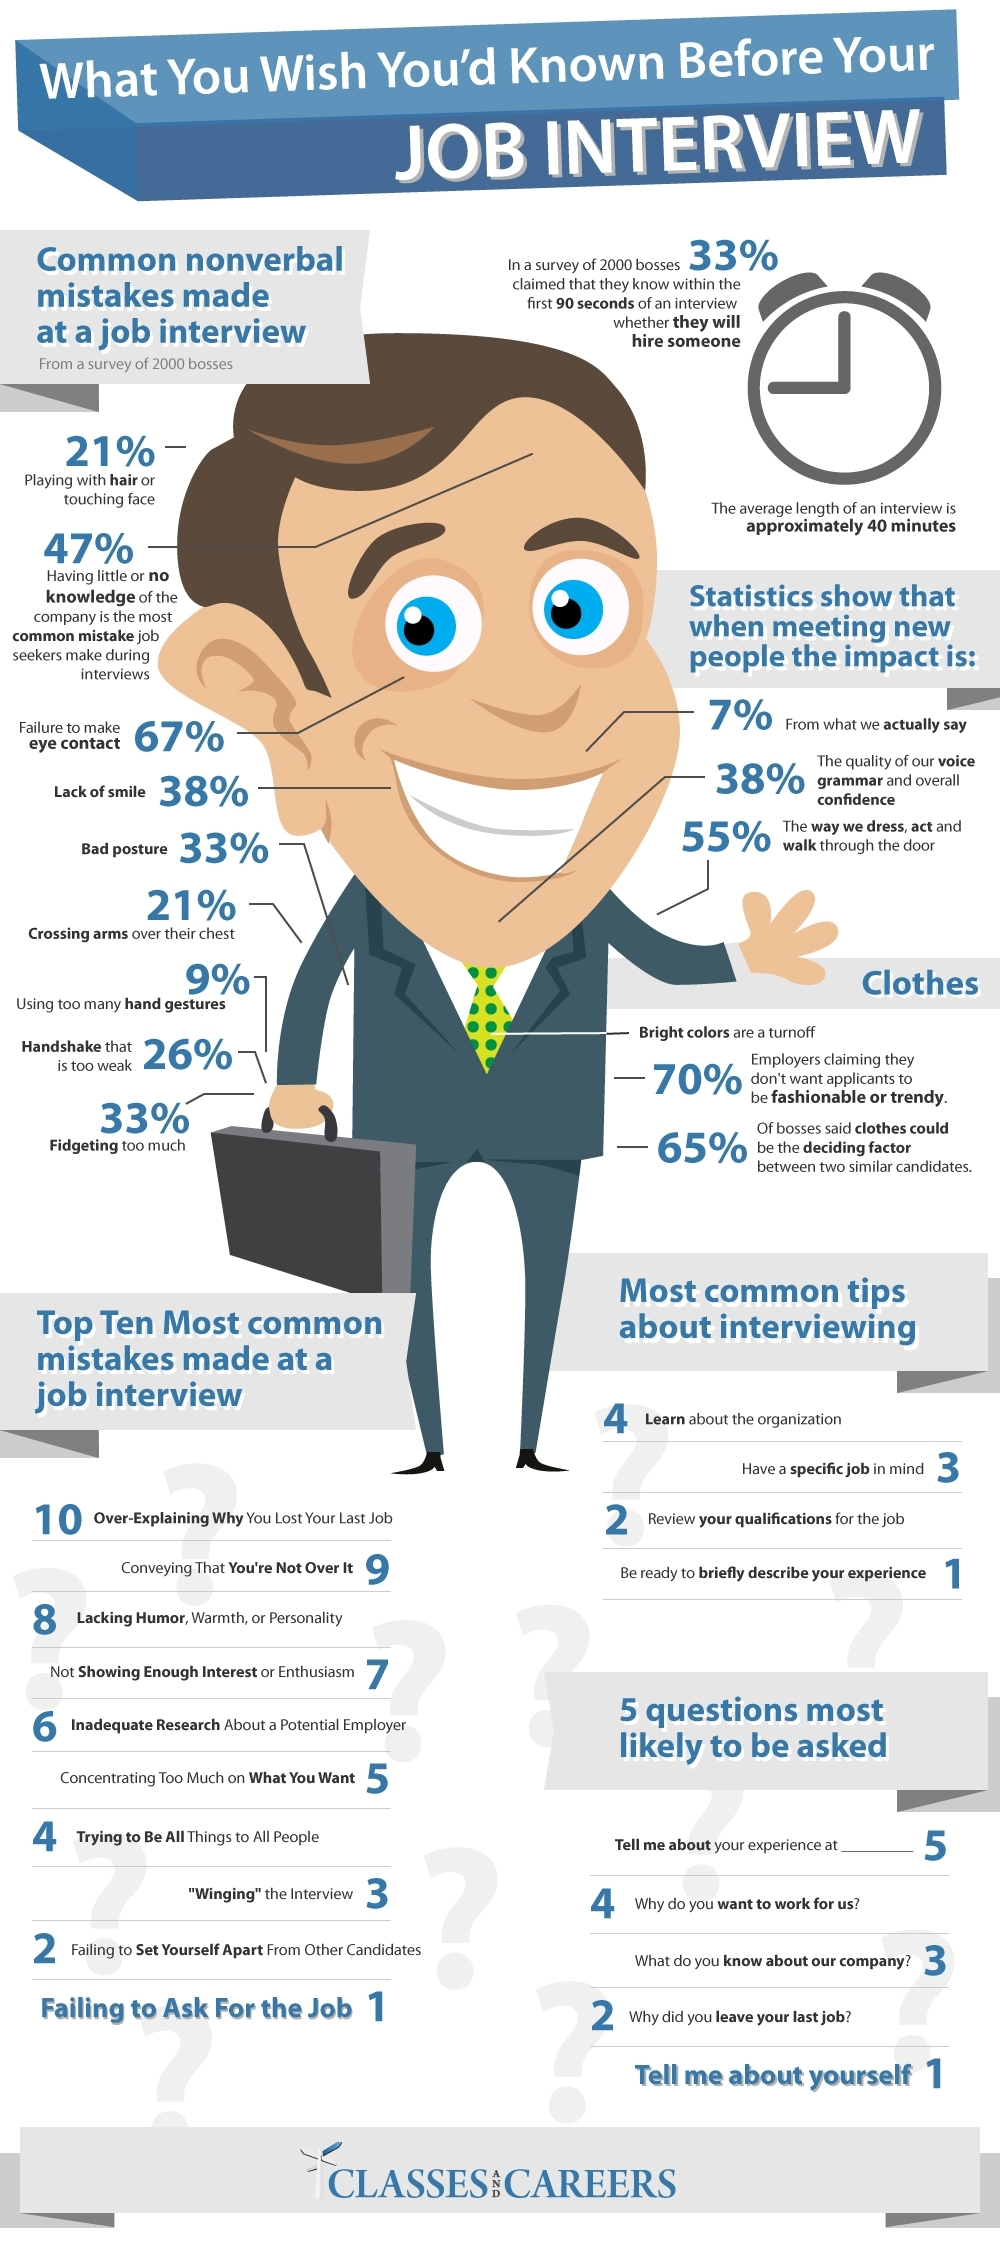 top interview tips georgetown alumni career services